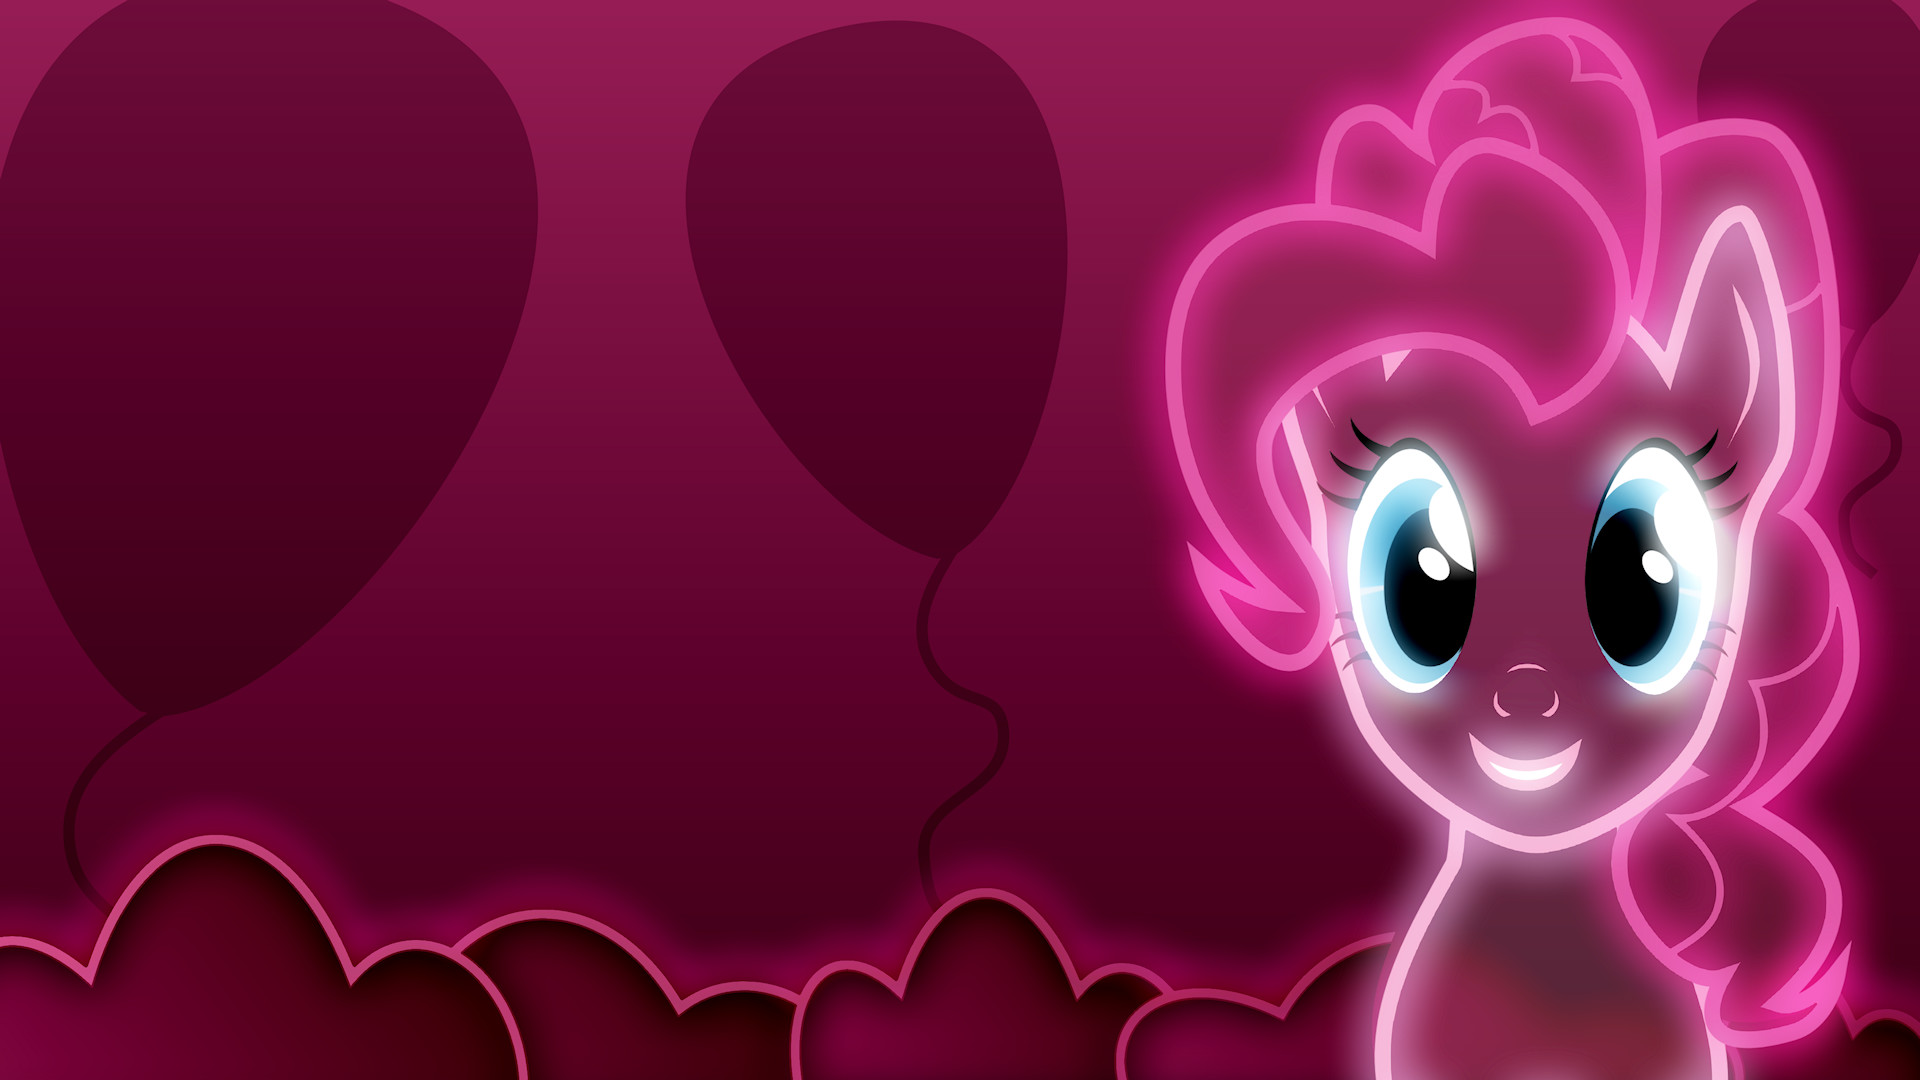 Pinky Wallpapers 54 Images